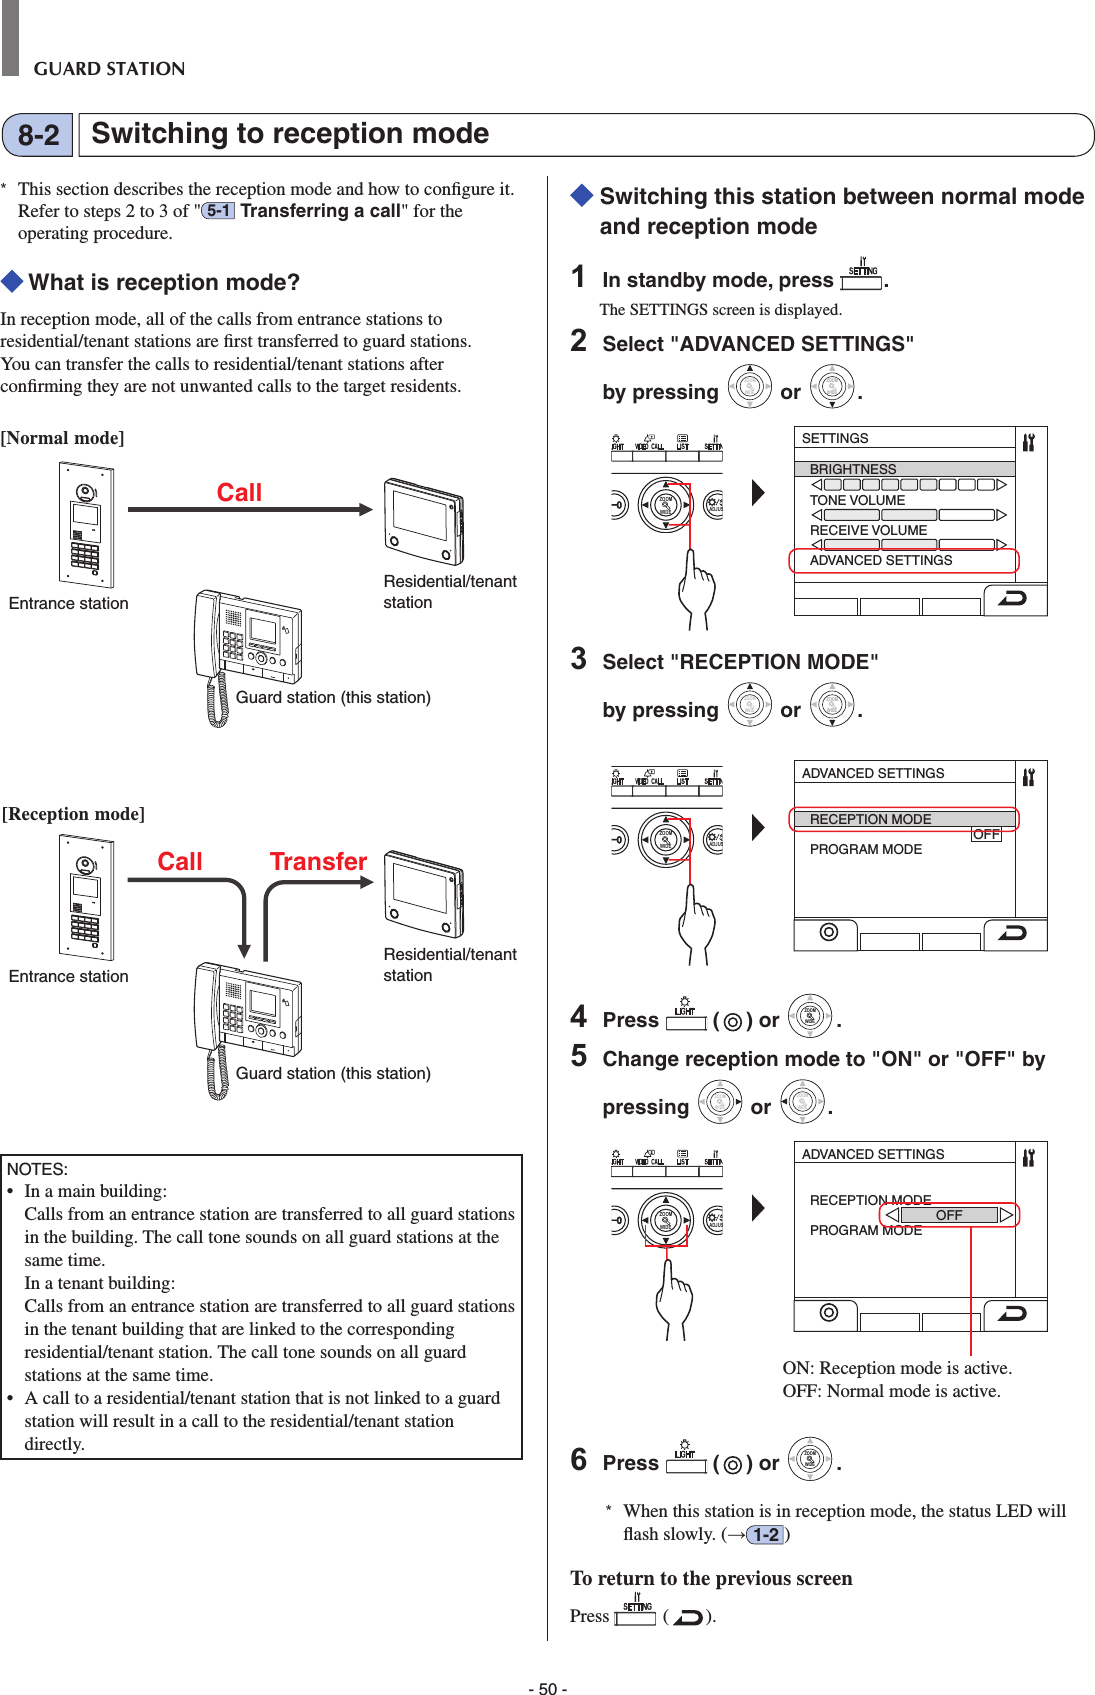 aiphone gt 1c7 wiring diagram Collection-Page 50 of GTDMBN GT Apartment Inter System User Manual ENG GT DMB MKB 17 05 29 1-s